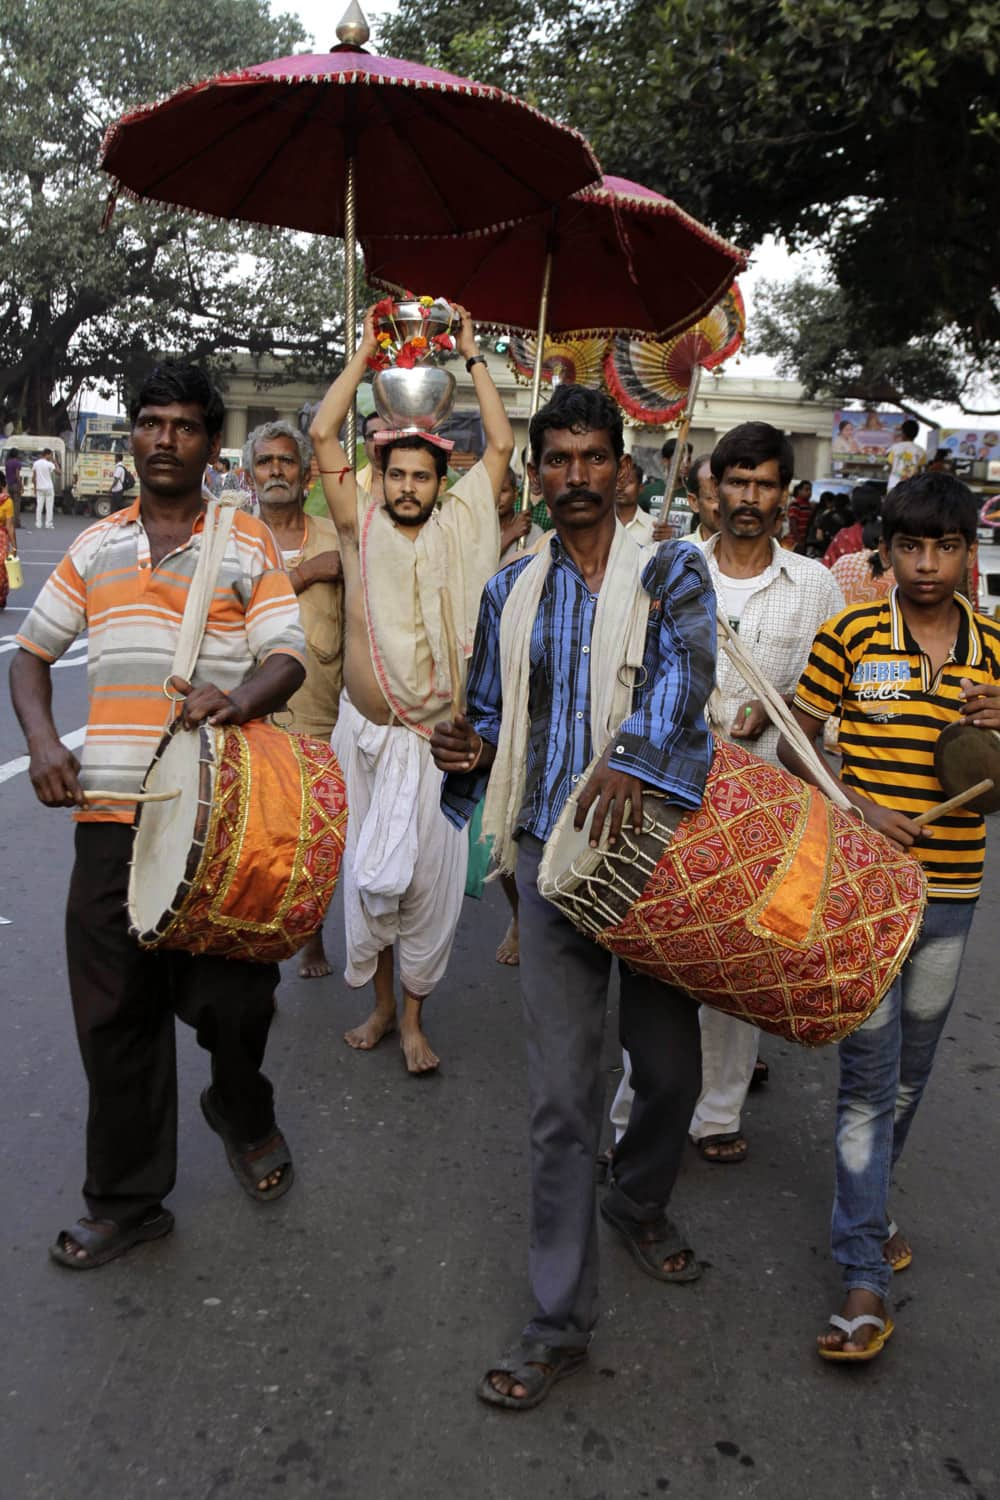 A devotee carries holy water from the Ganges River as he marches through a street in a procession of Hindu festival Durga Puja in Kolkata.